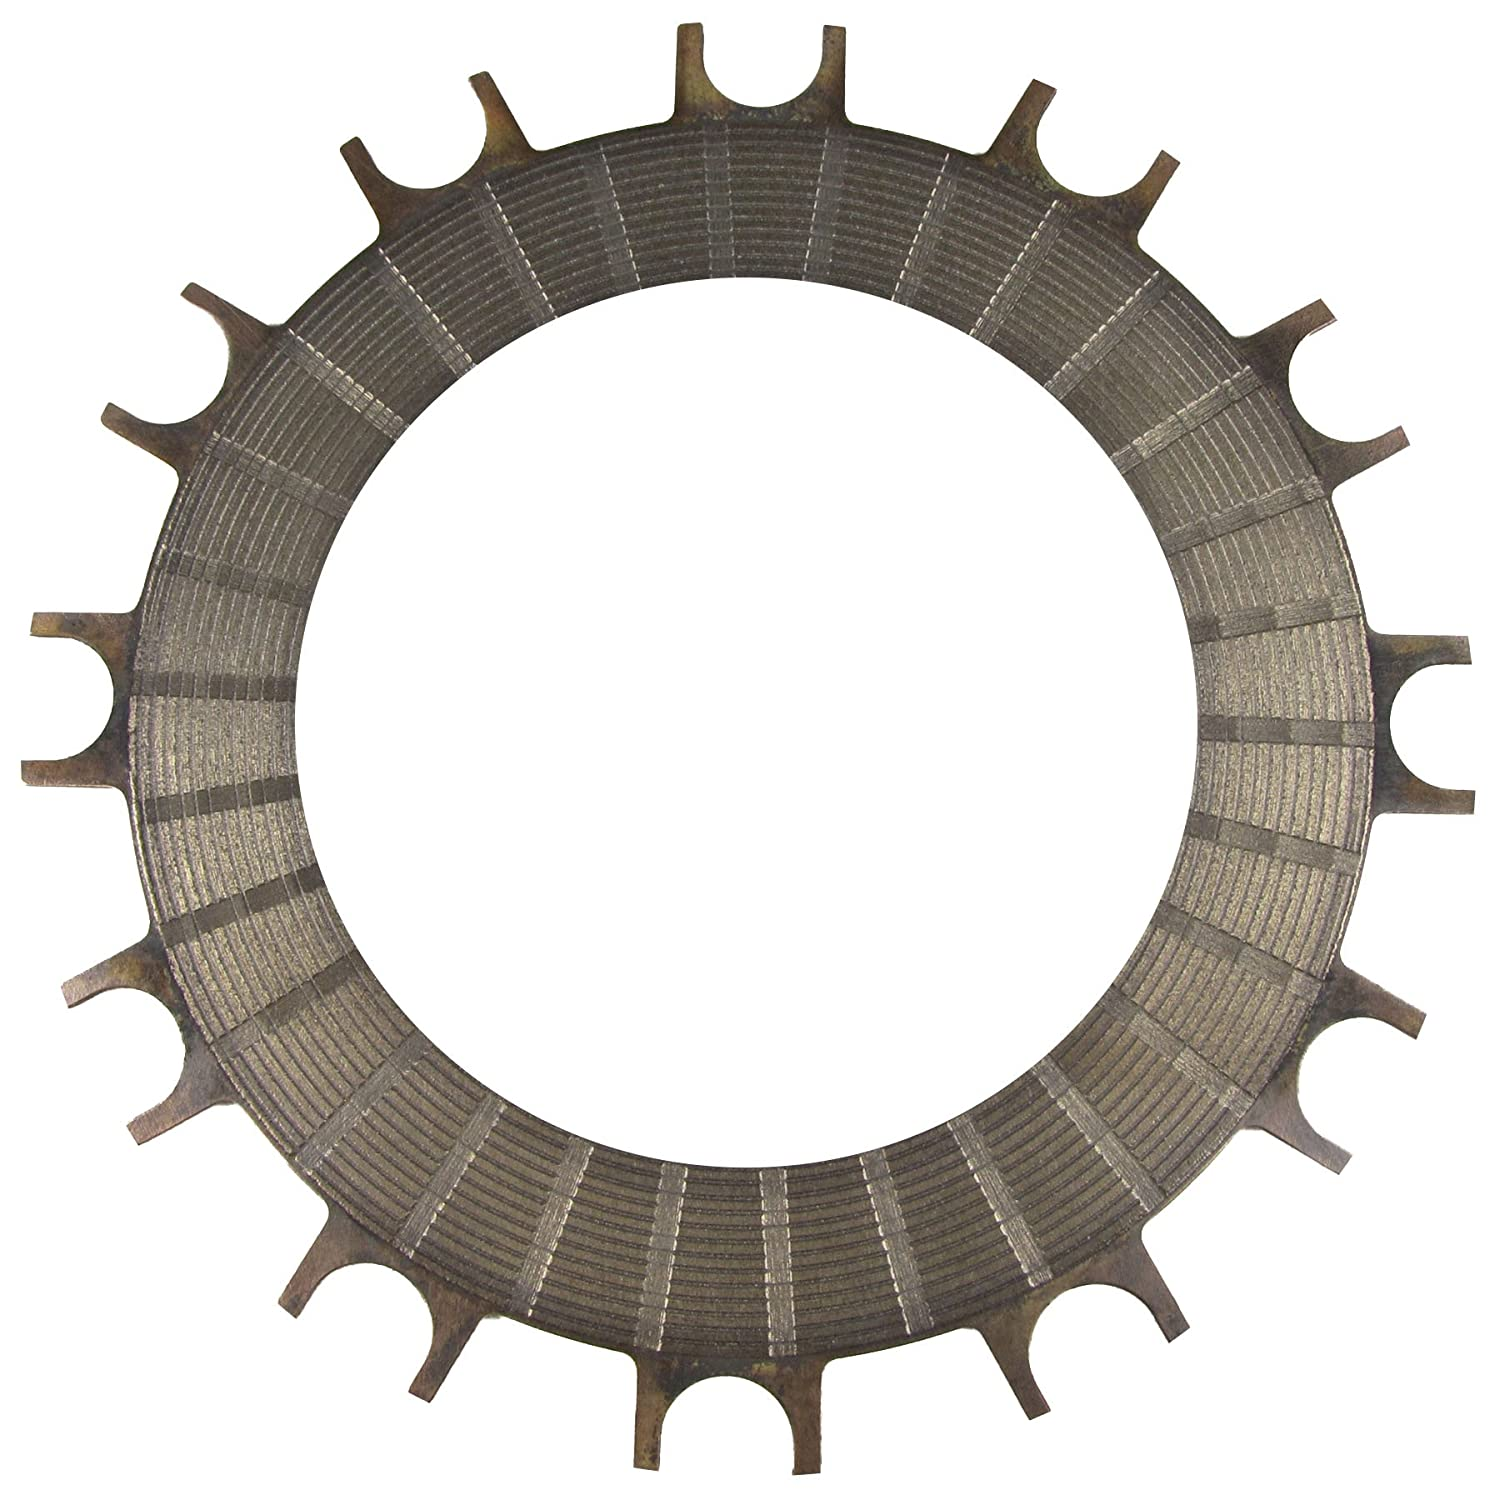 Friction Clutch Caterpillar 2L1753 Replaced Alto online shop Las Vegas Mall # 332706 by